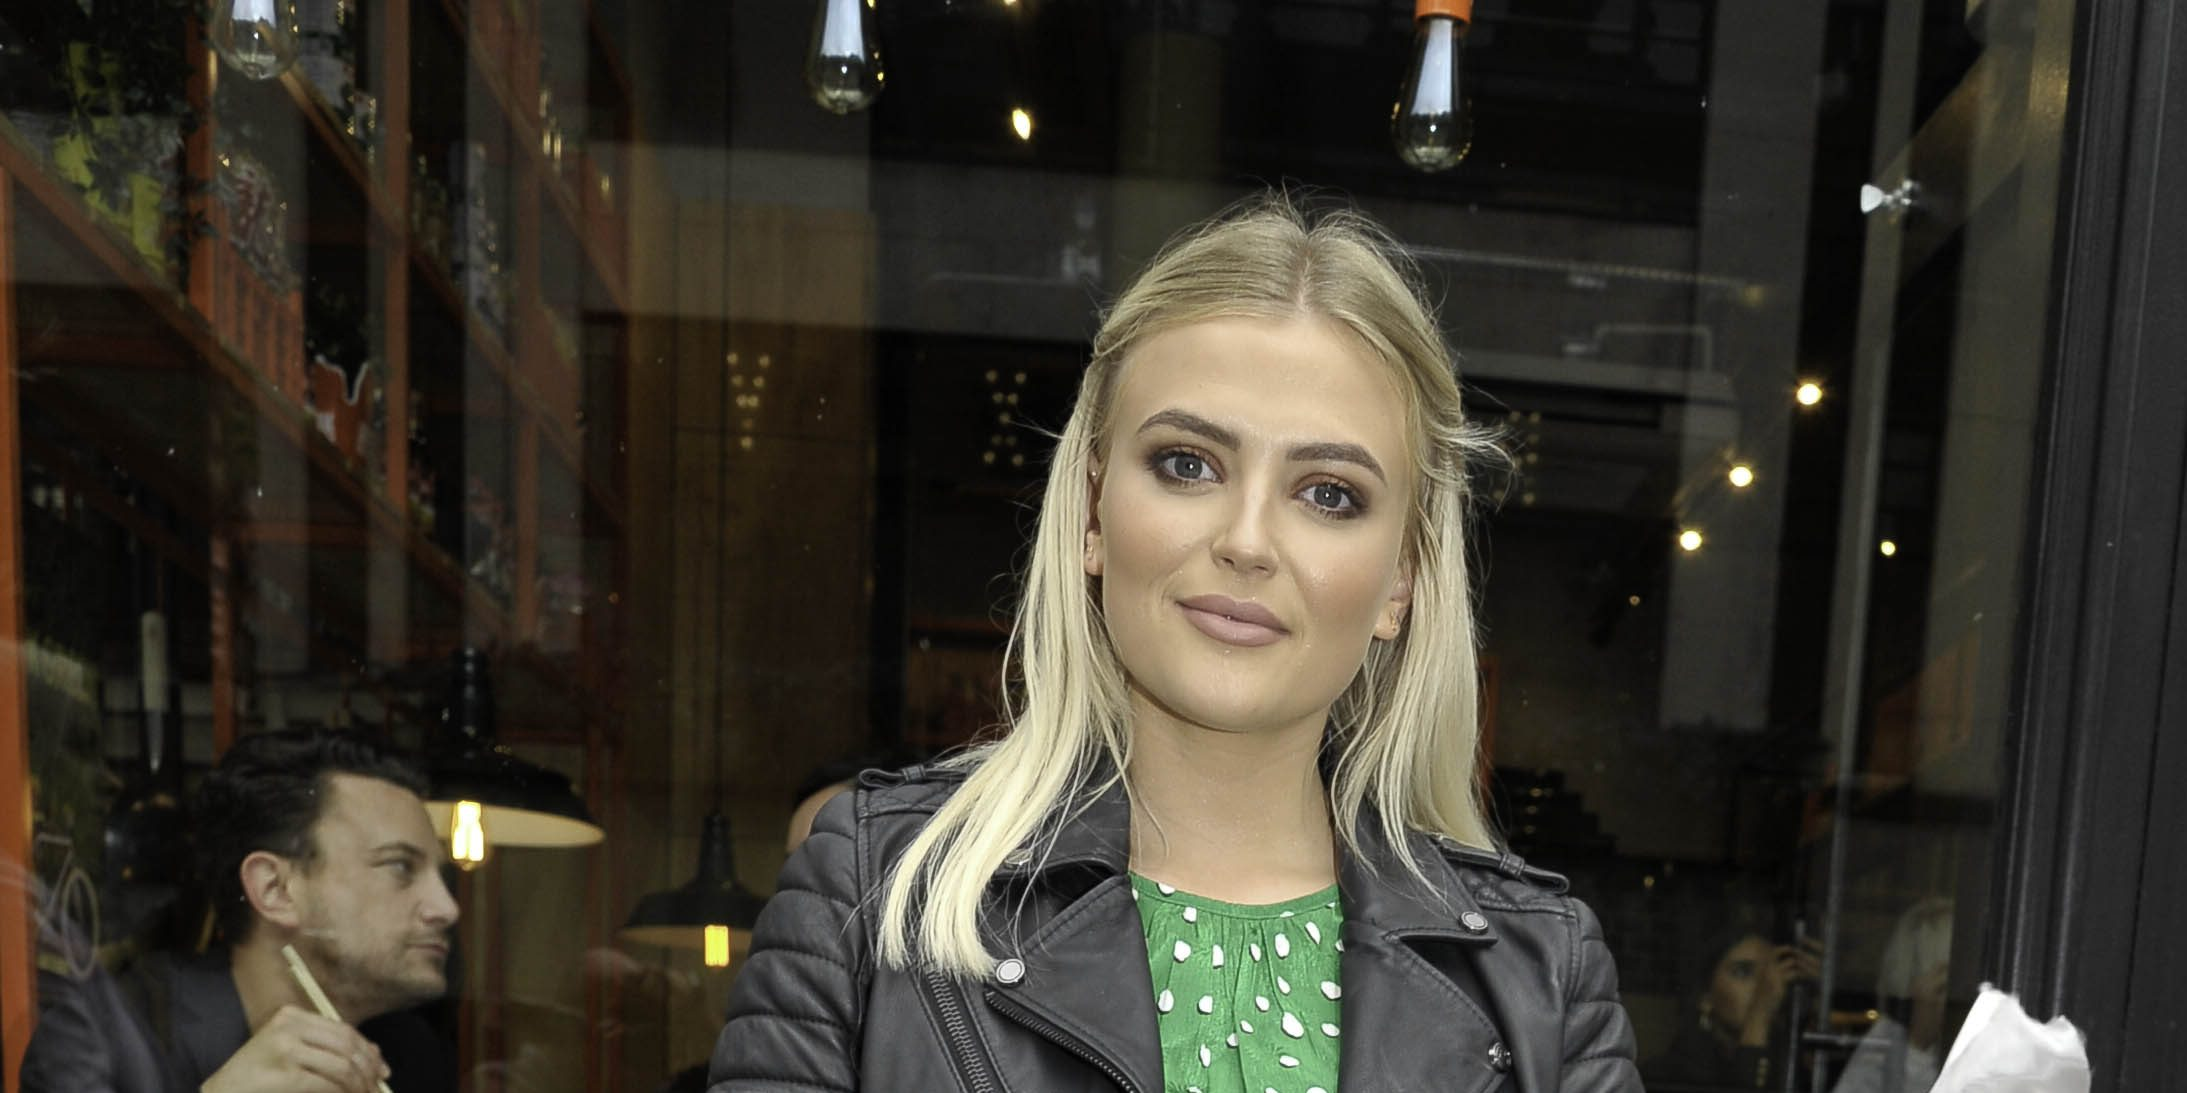 Coronation Street's Lucy Fallon shares picture with lookalike sisters